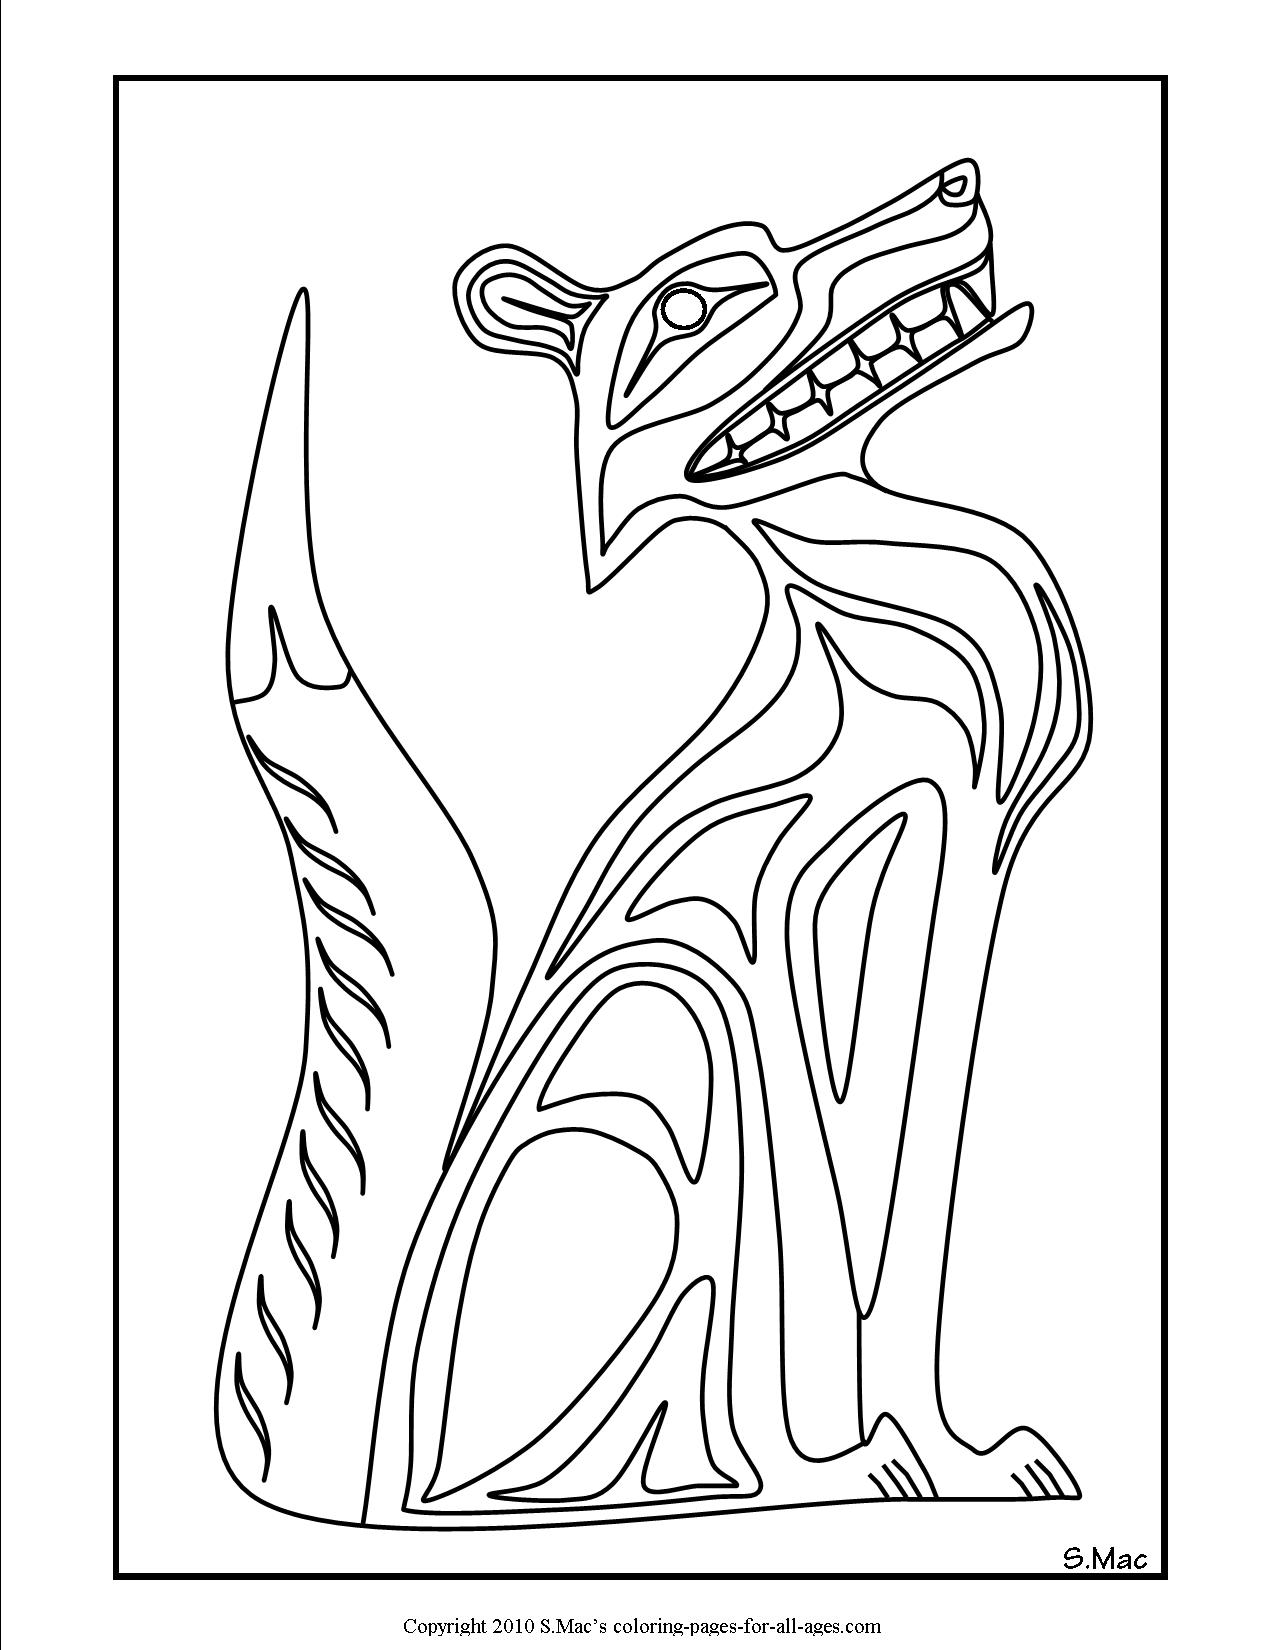 free printable native american coloring pages native american boy coloring pages download and print for free printable coloring native american free pages